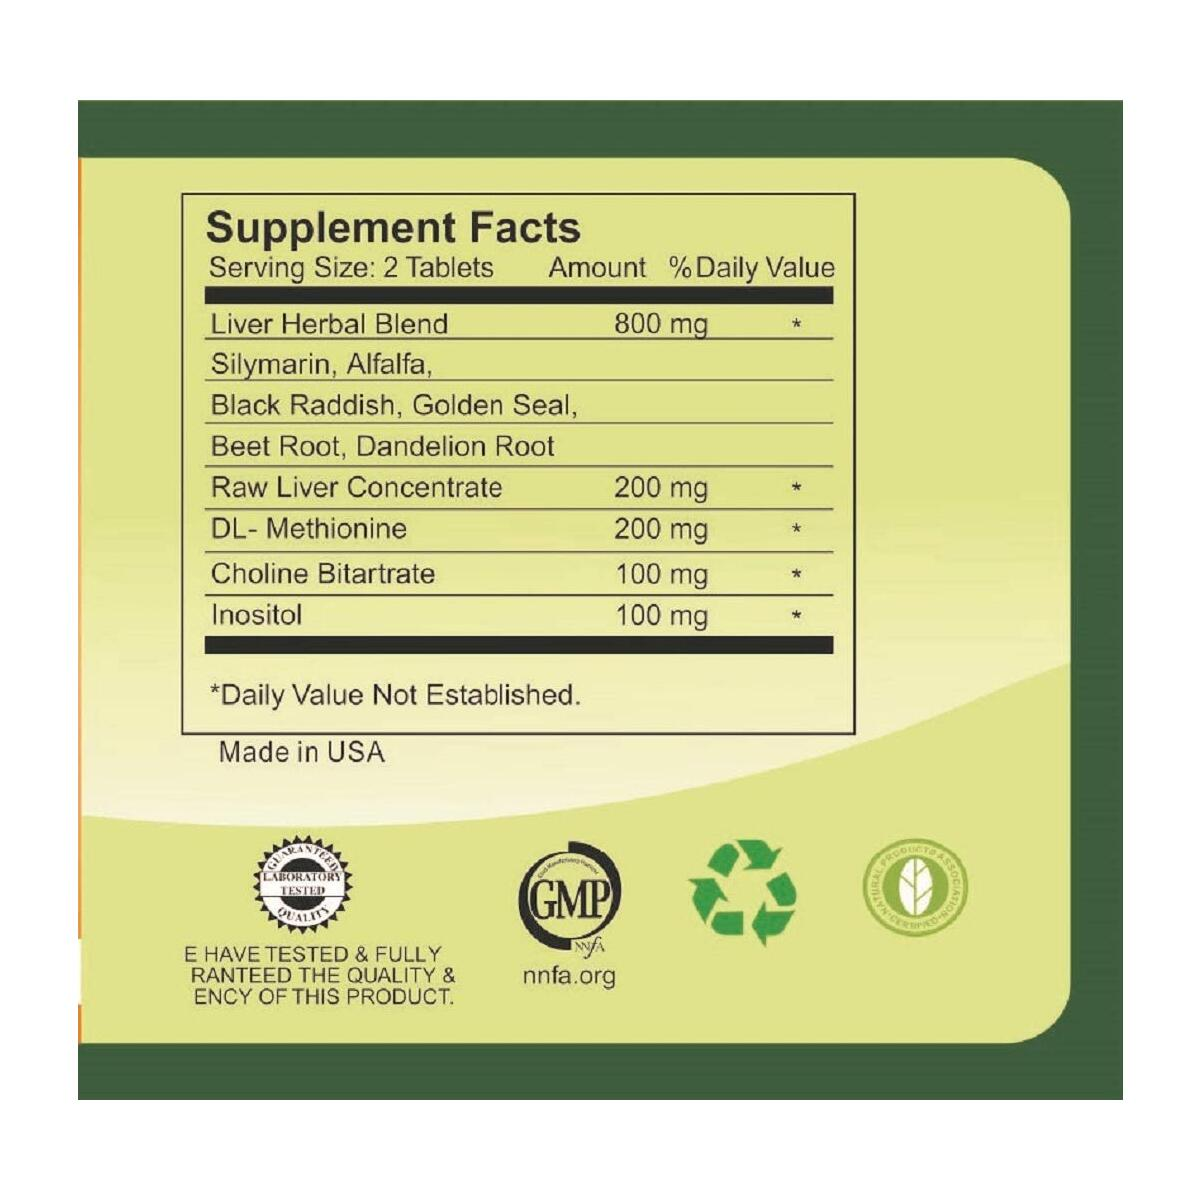 (3 Count, 10% Off) Esmond Natural: Pro Liver (Supports Liver Function), GMP, Natural Product Assn Certified, Made in USA-240 Tablets